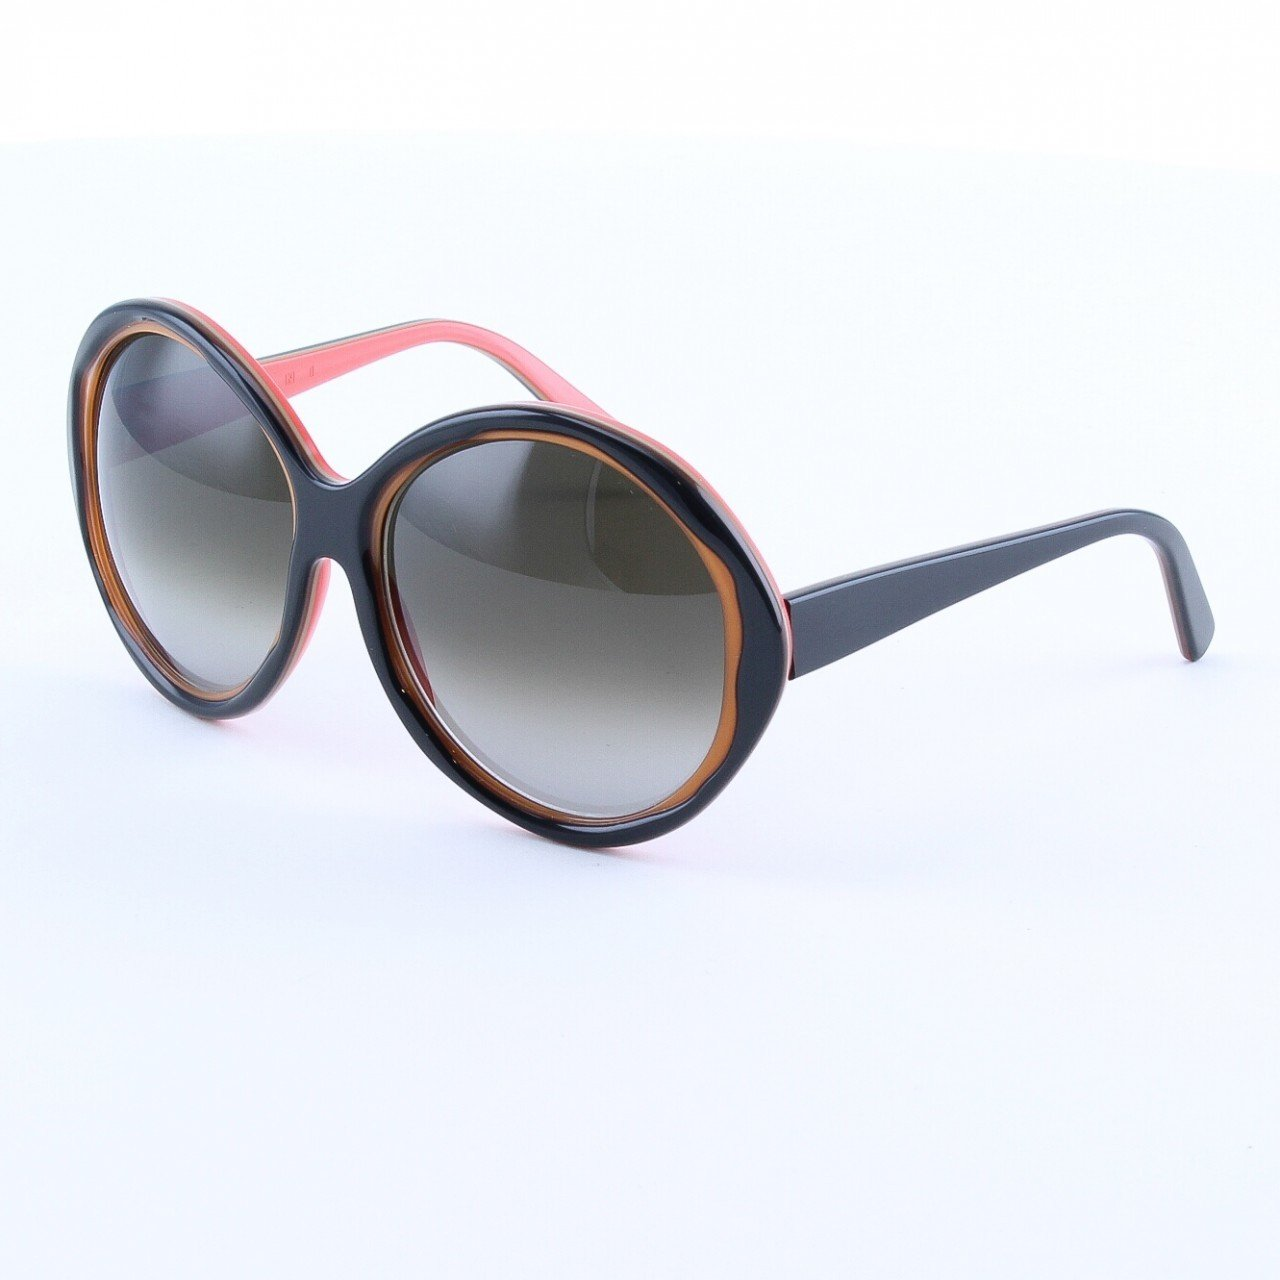 Marni MA156 Sunglasses Col. 03 Dark Chocolate Brown and Tan with Brown Lenses